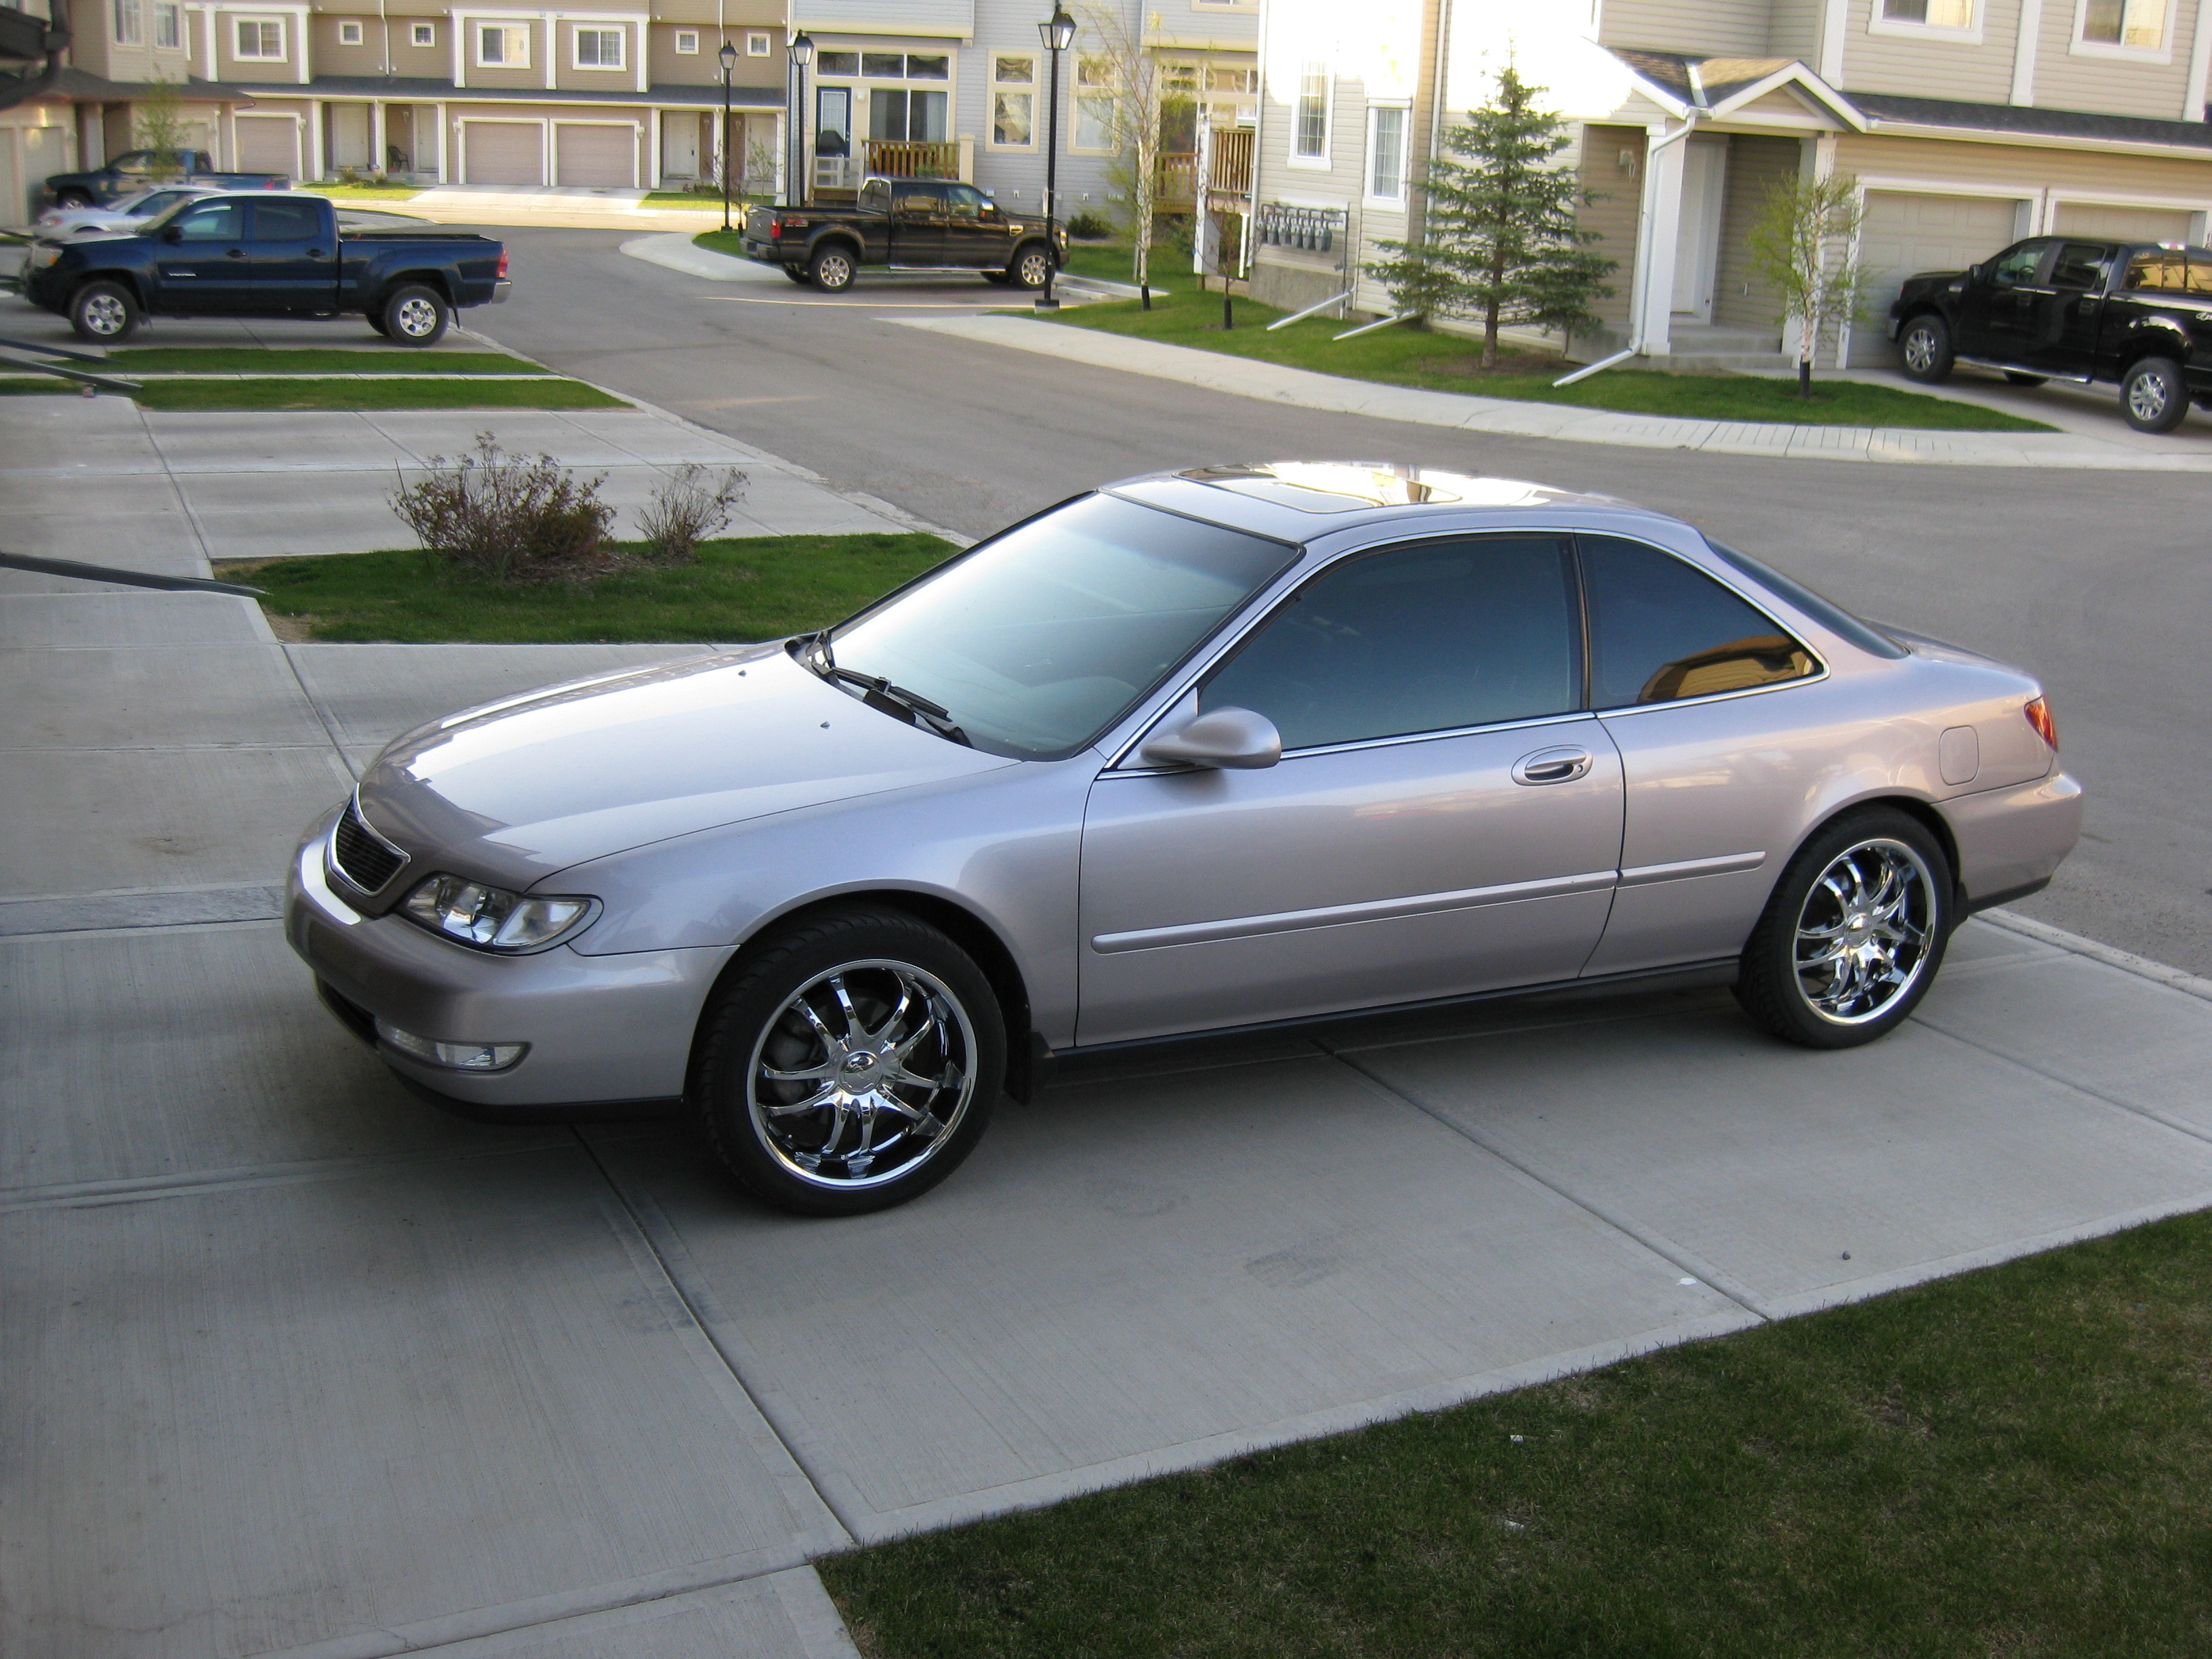 BossBrown's 1997 Acura CL